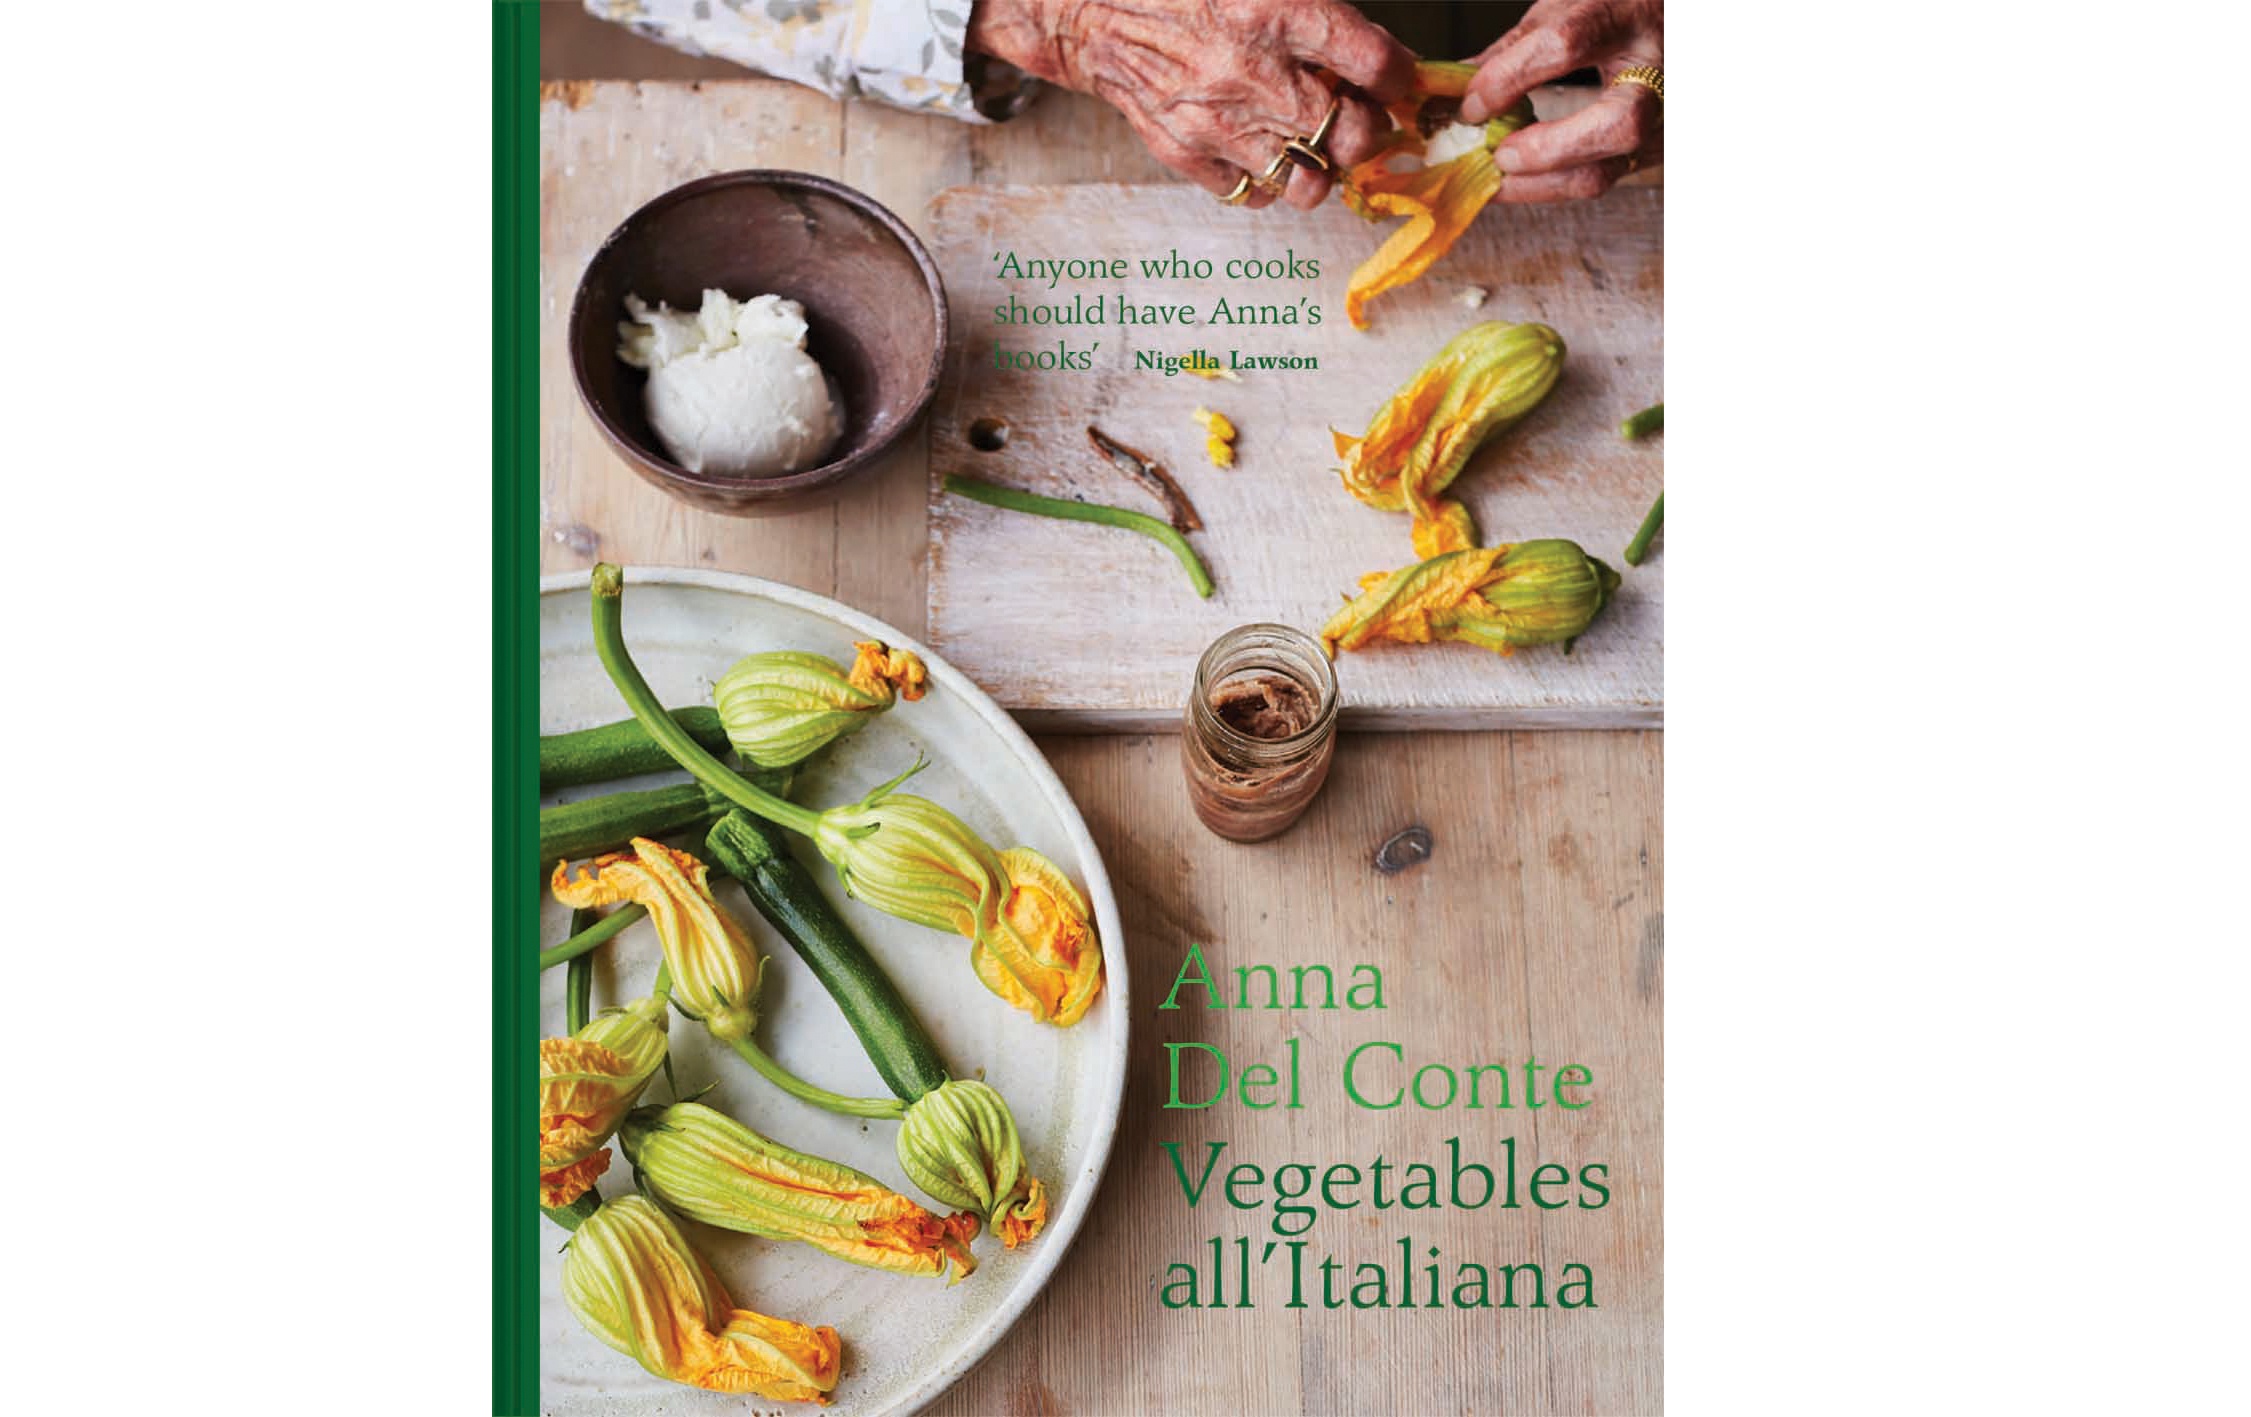 Anna Del Conte's Vegetables all'Italiana (Laura Edwards/PA)